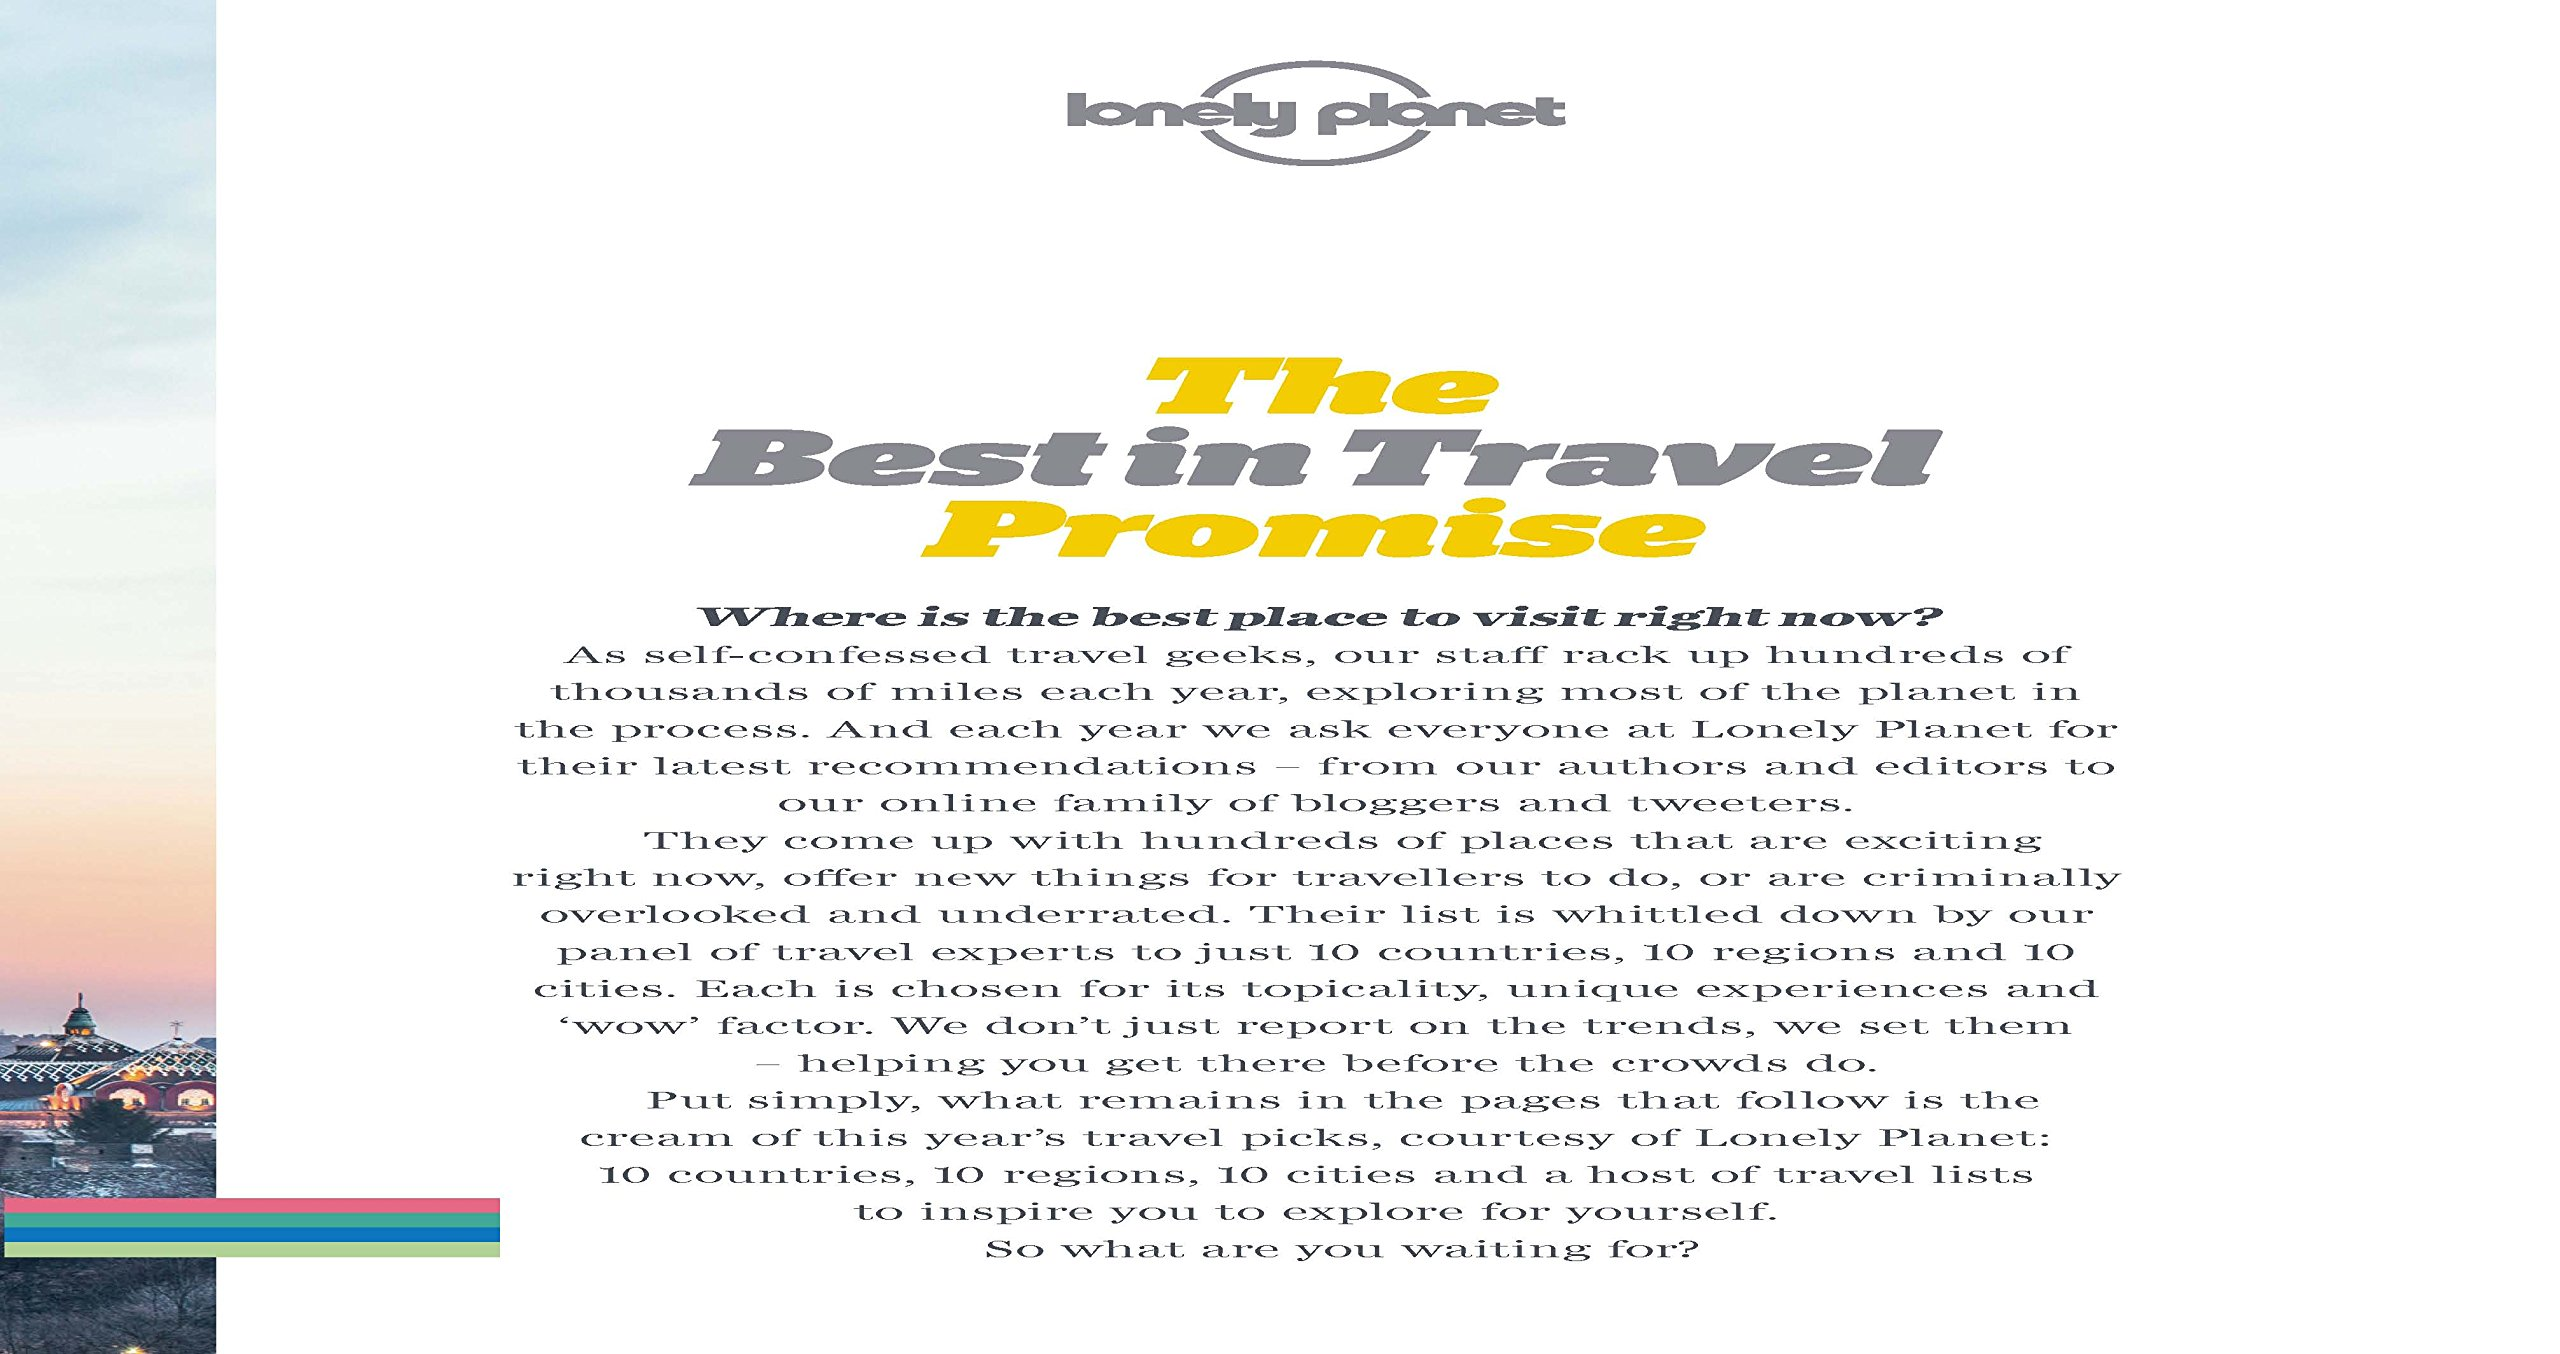 lonely planet s best in travel the best trends destinations lonely planet s best in travel 2015 the best trends destinations journeys experiences for the year ahead lonely planet s the best in travel lonely